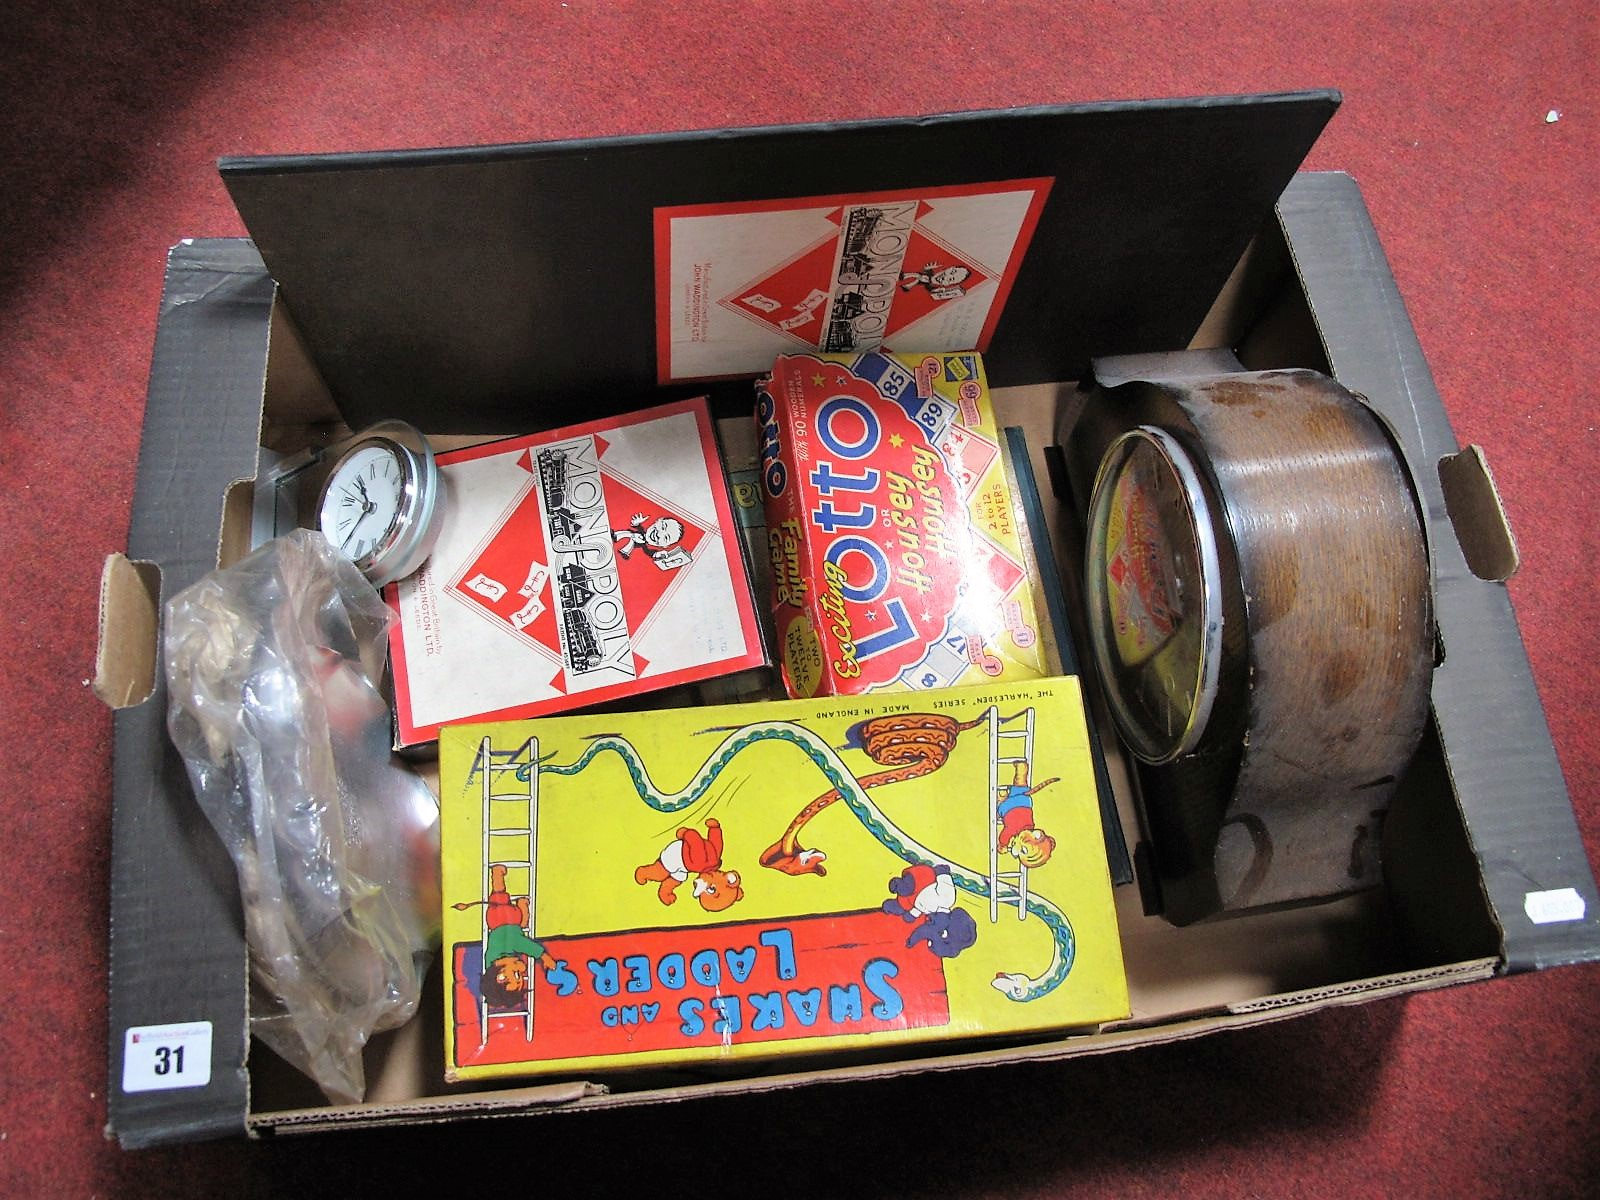 Lot 31 - Monopoly, Lotto, and Other Games, Smiths Westminster Chimes Mantel clock, etc:- One Box